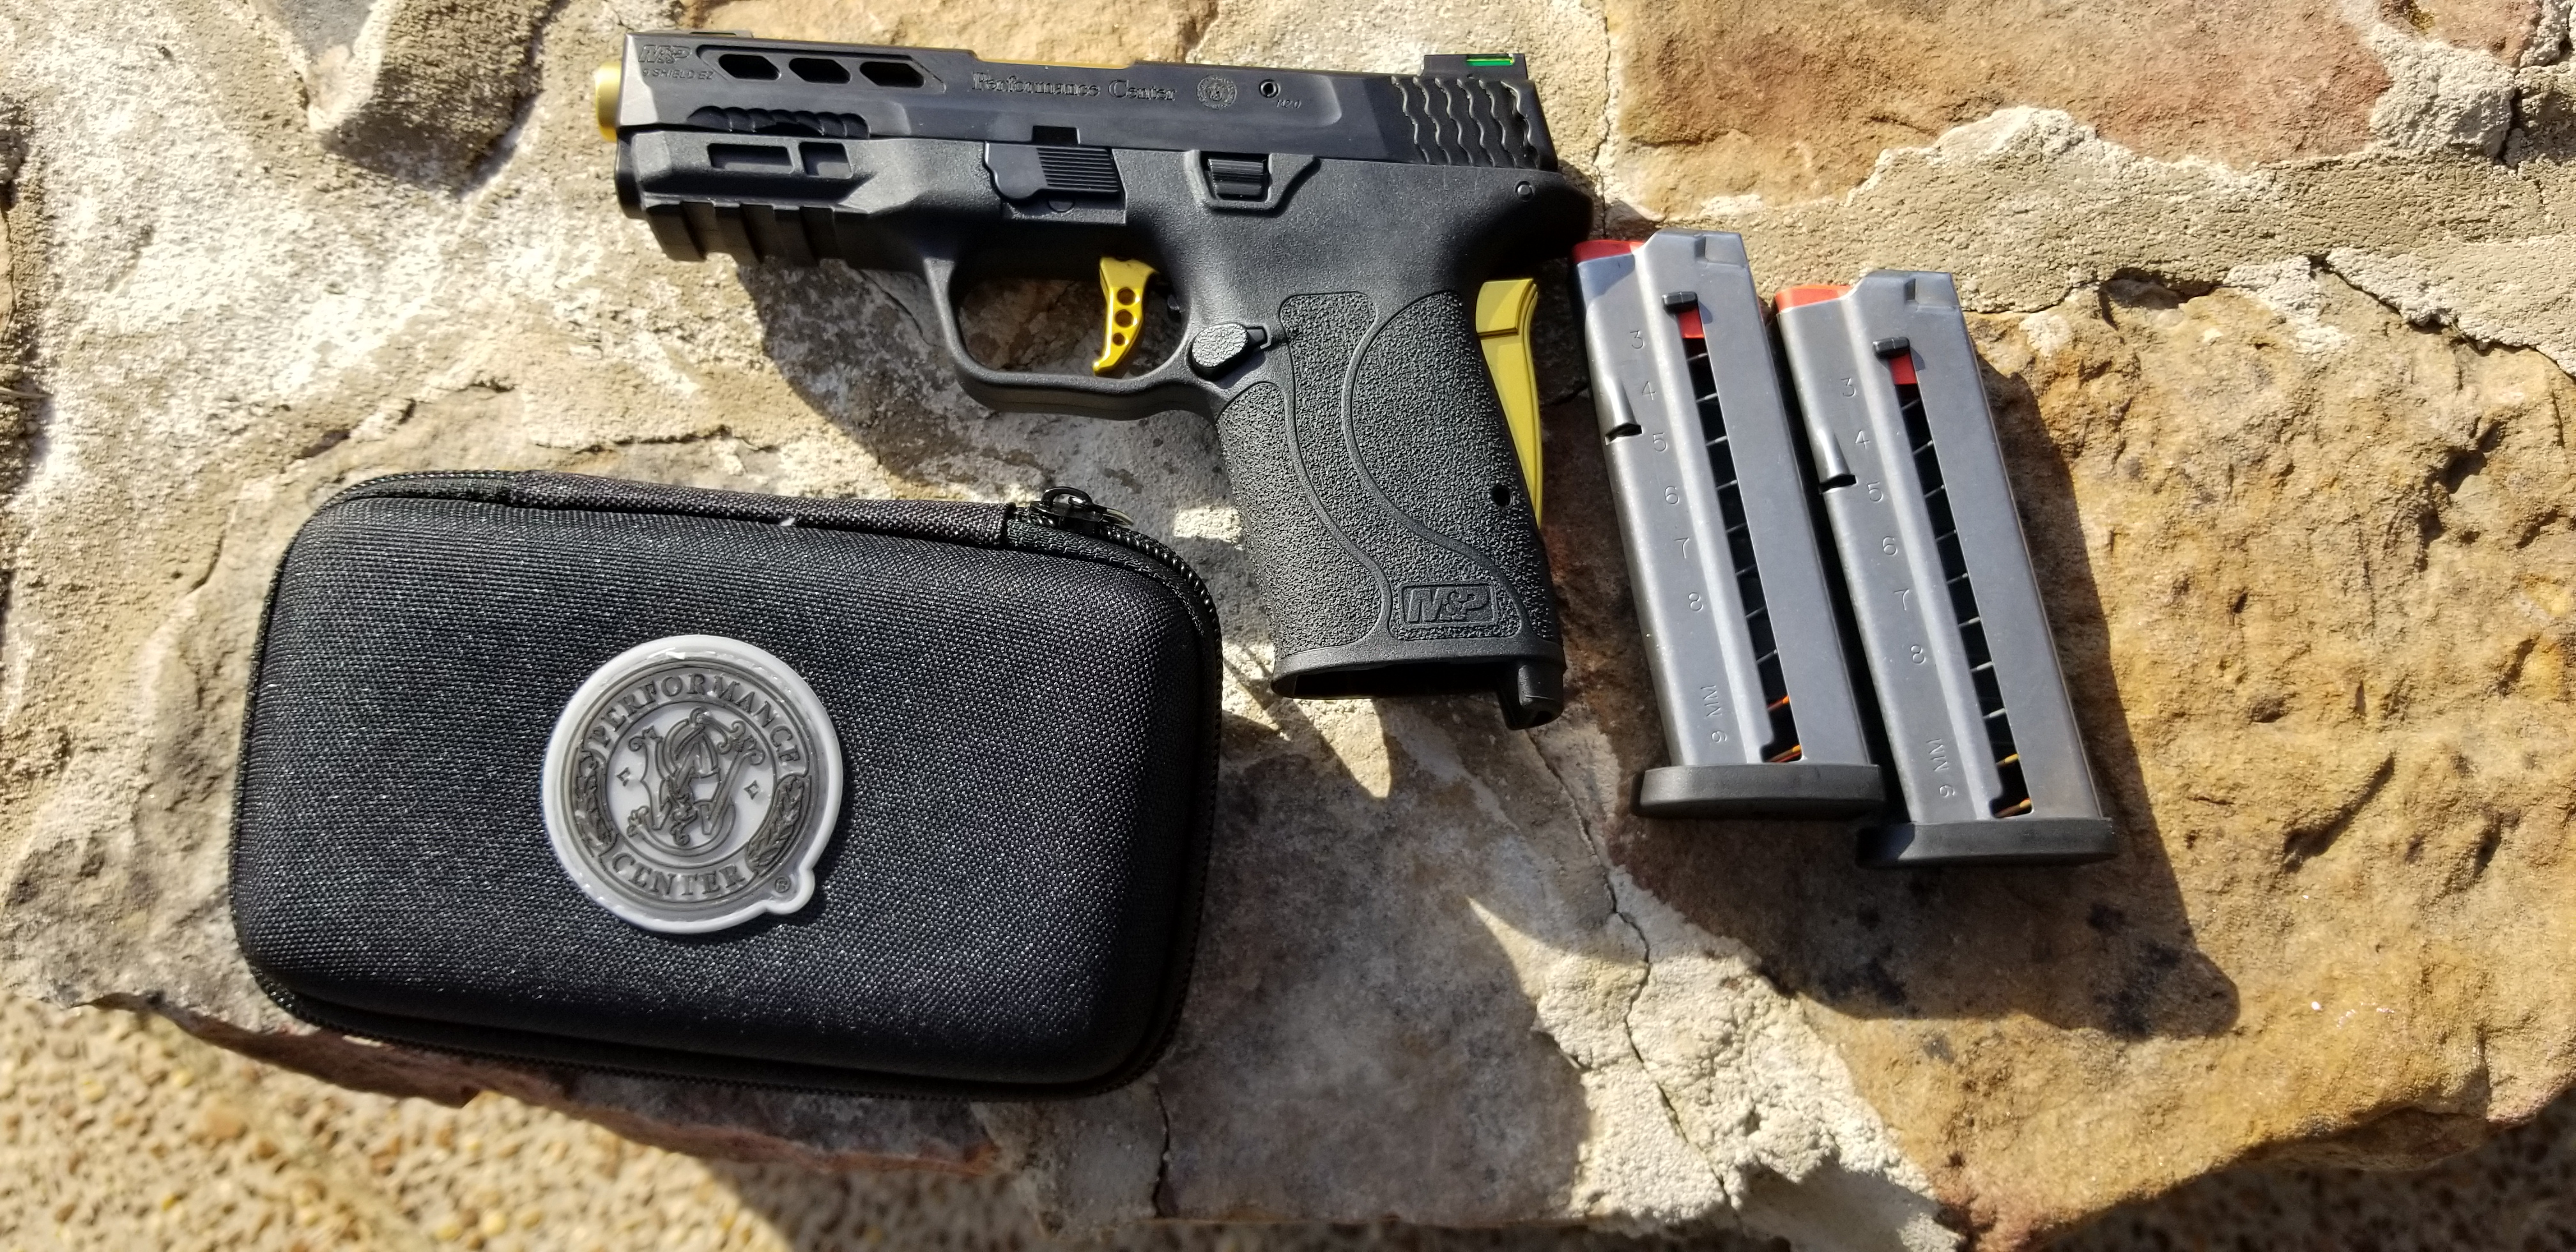 RECALL ALERT: Smith & Wesson Issues M&P Shield EZ Pistol Recall